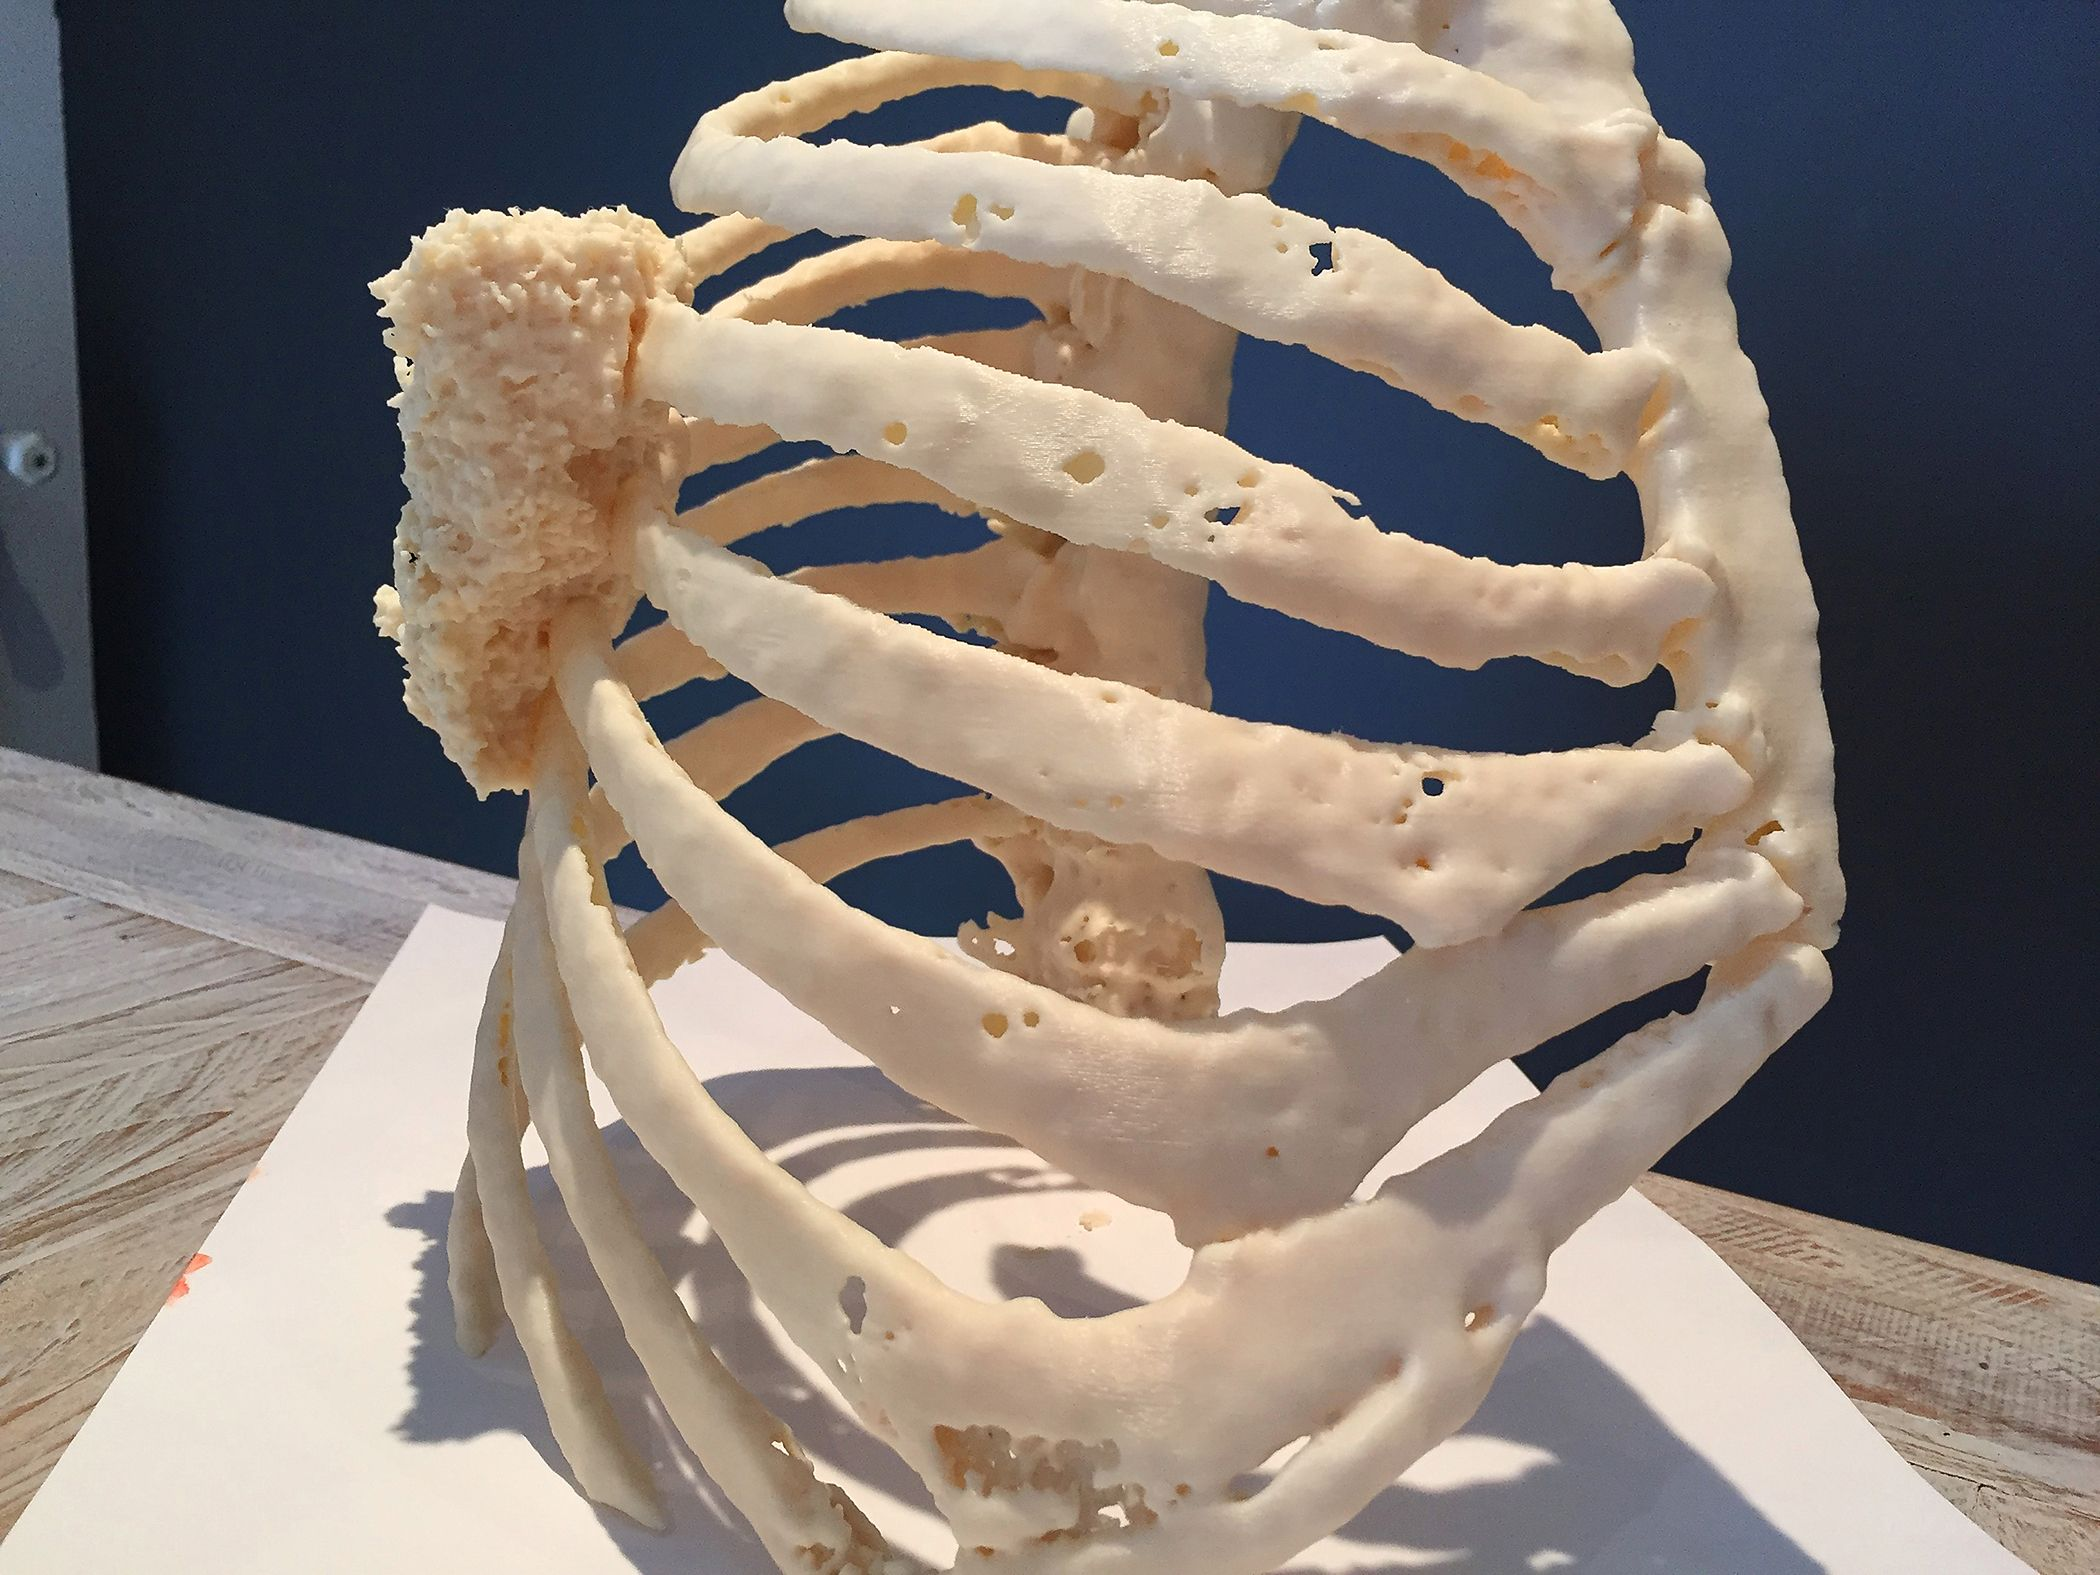 This patient-specific model of a thoracic wall tumor was 3D printed using the Stratasys Fortus 450mc.